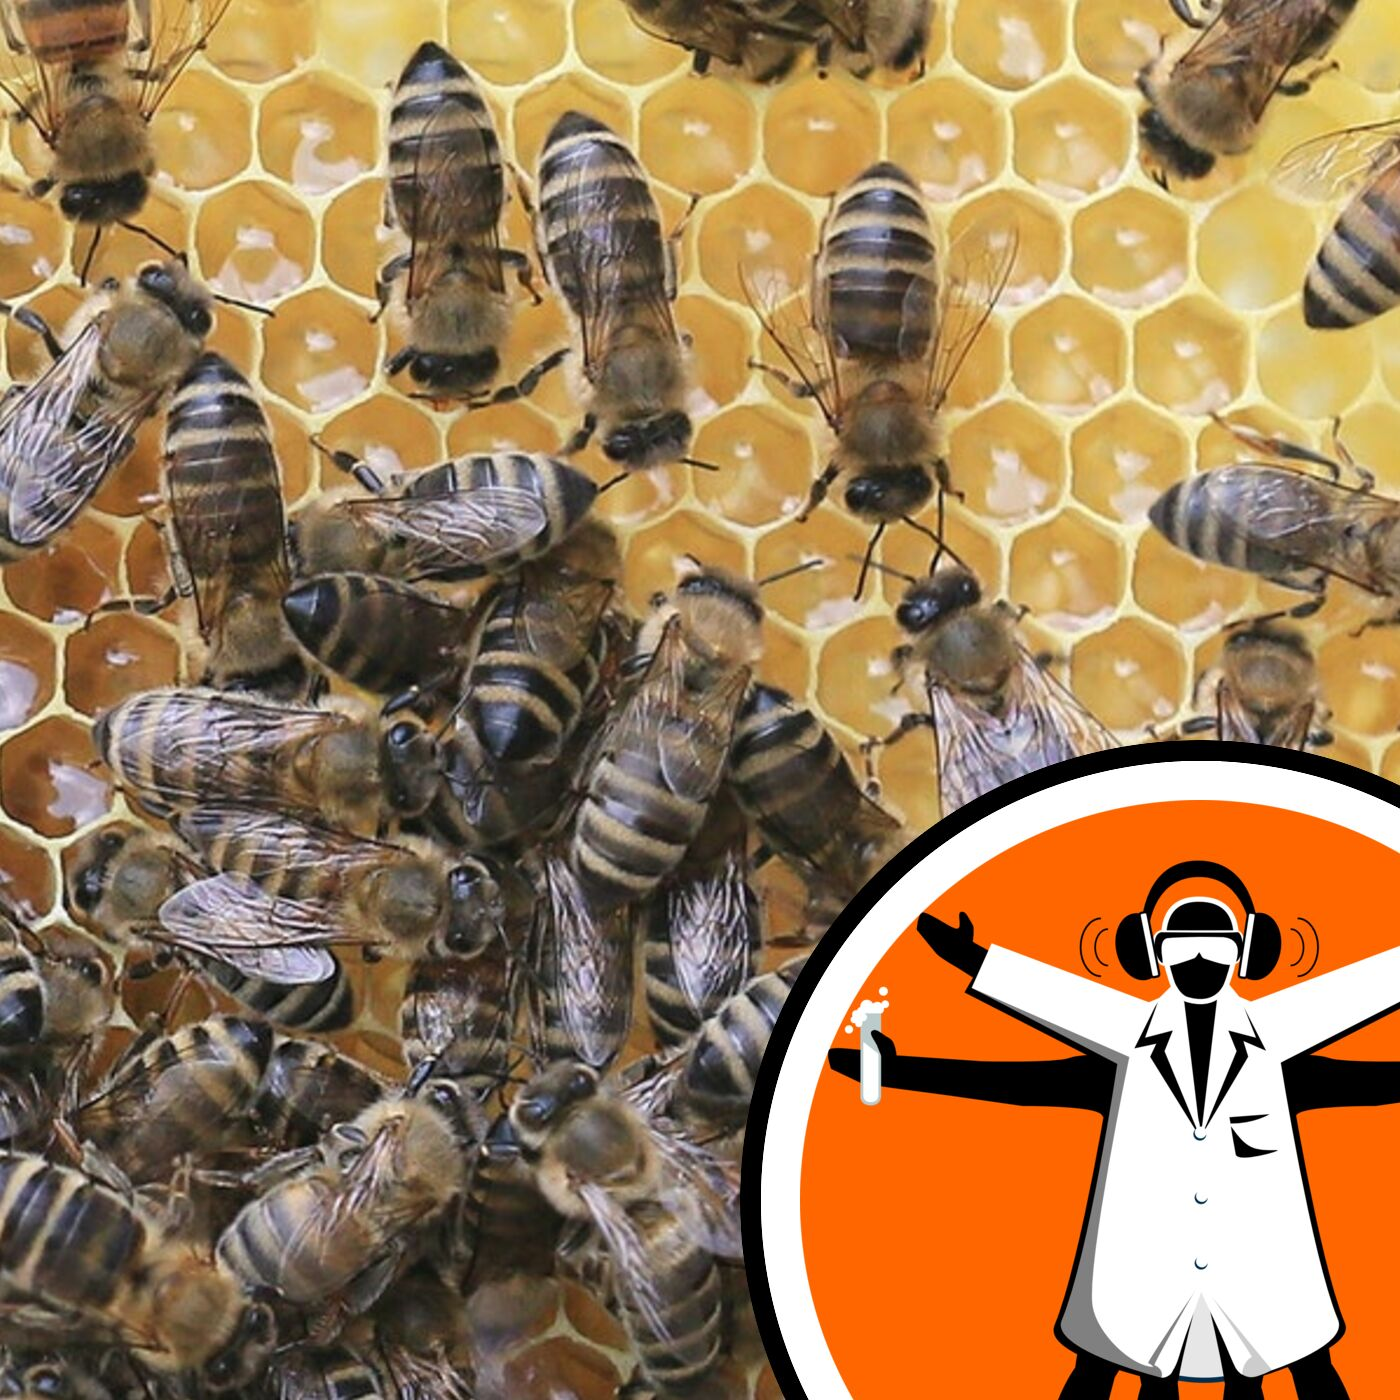 Pesticide antidote might help struggling bees